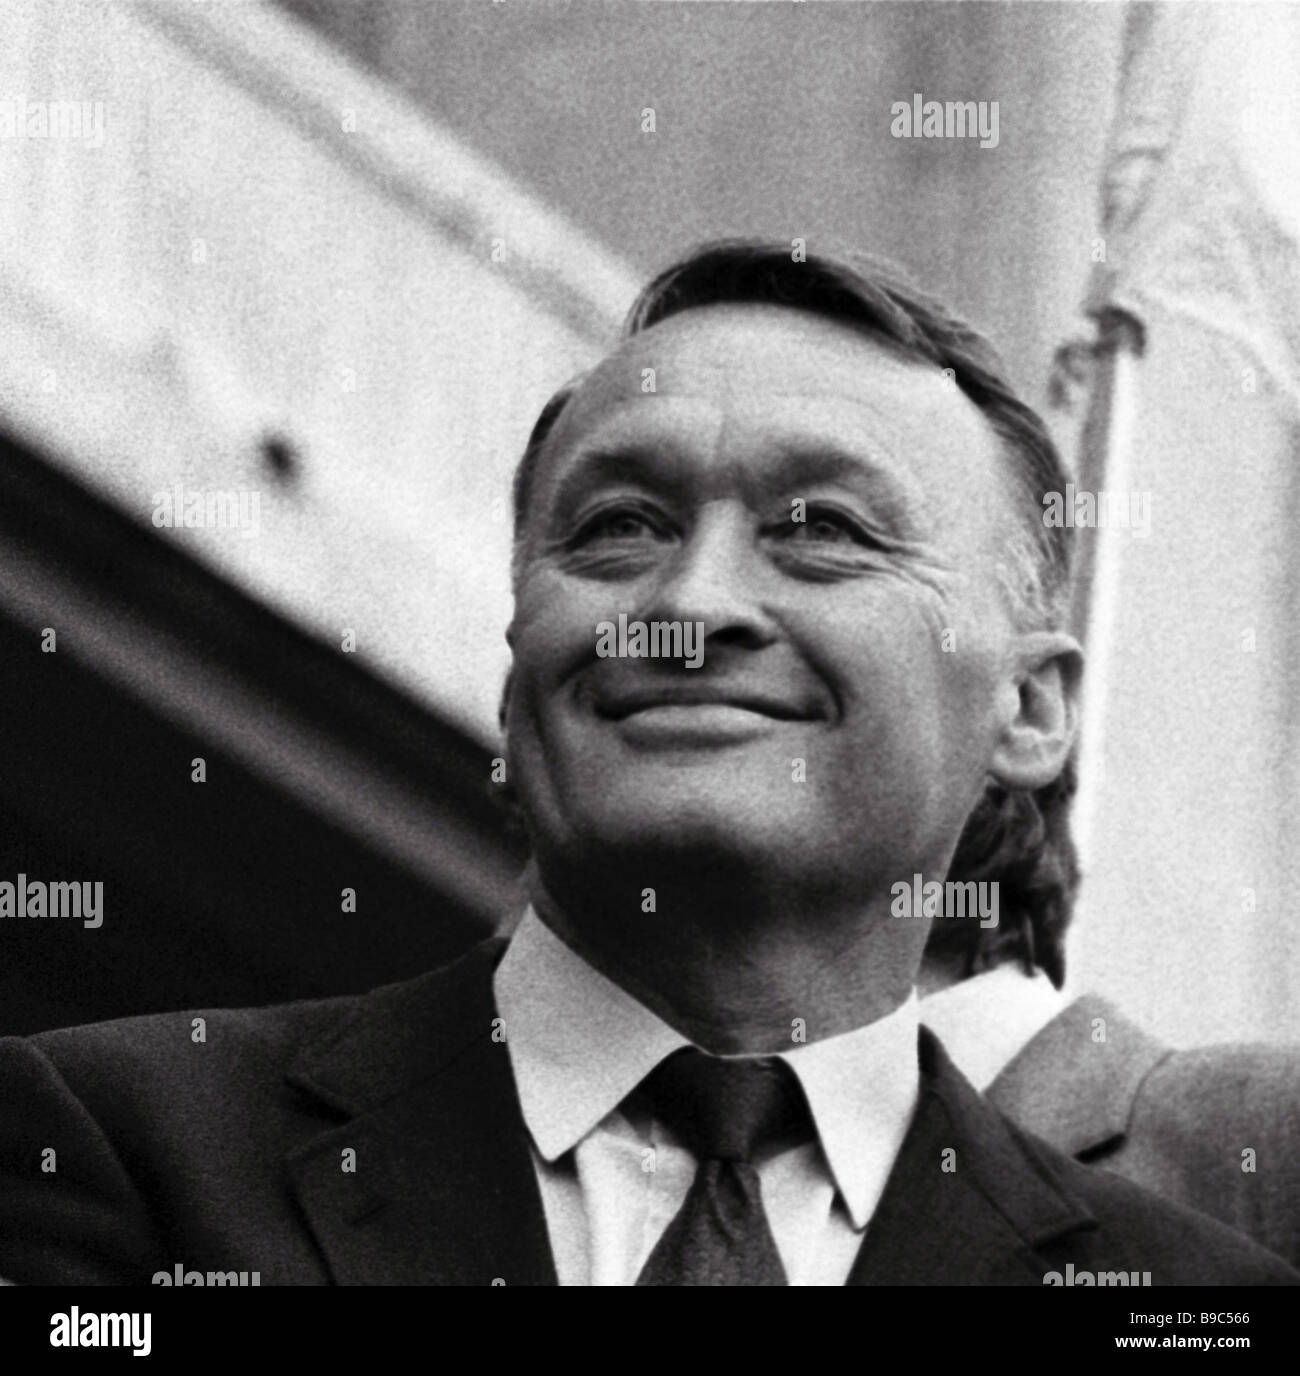 Former Soviet KGB Major General Oleg Kalugin takes part in the rally and manifestation organized by democratic forces - Stock Image